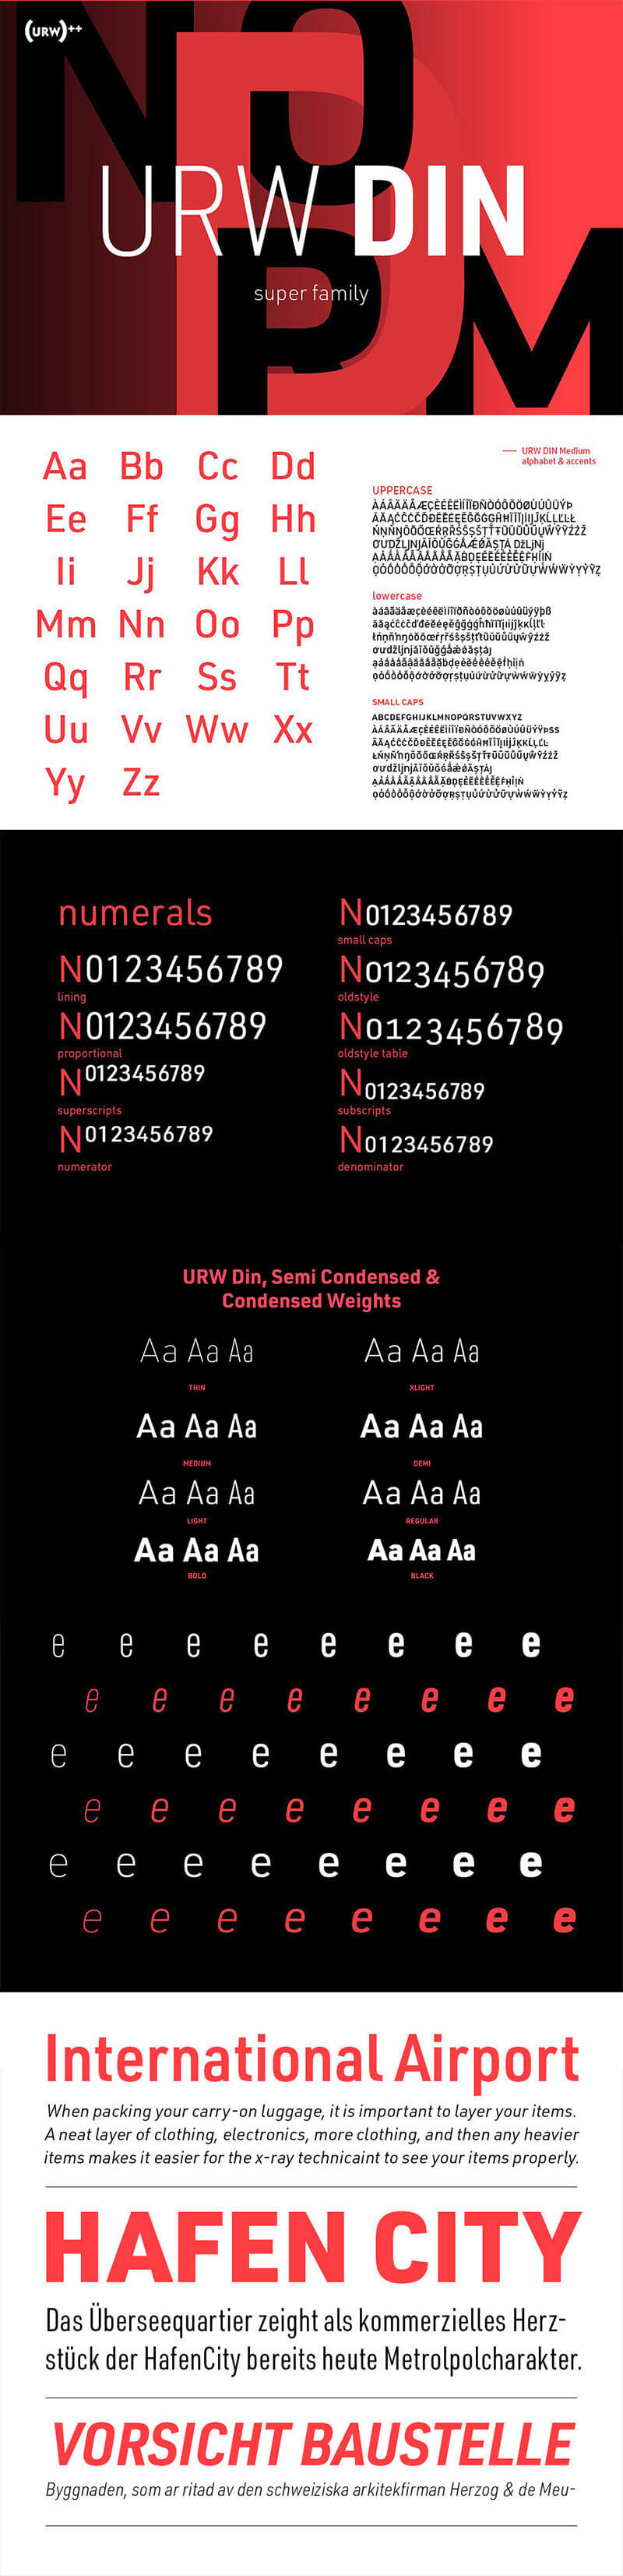 exceptional-best-selling-fonts-c1